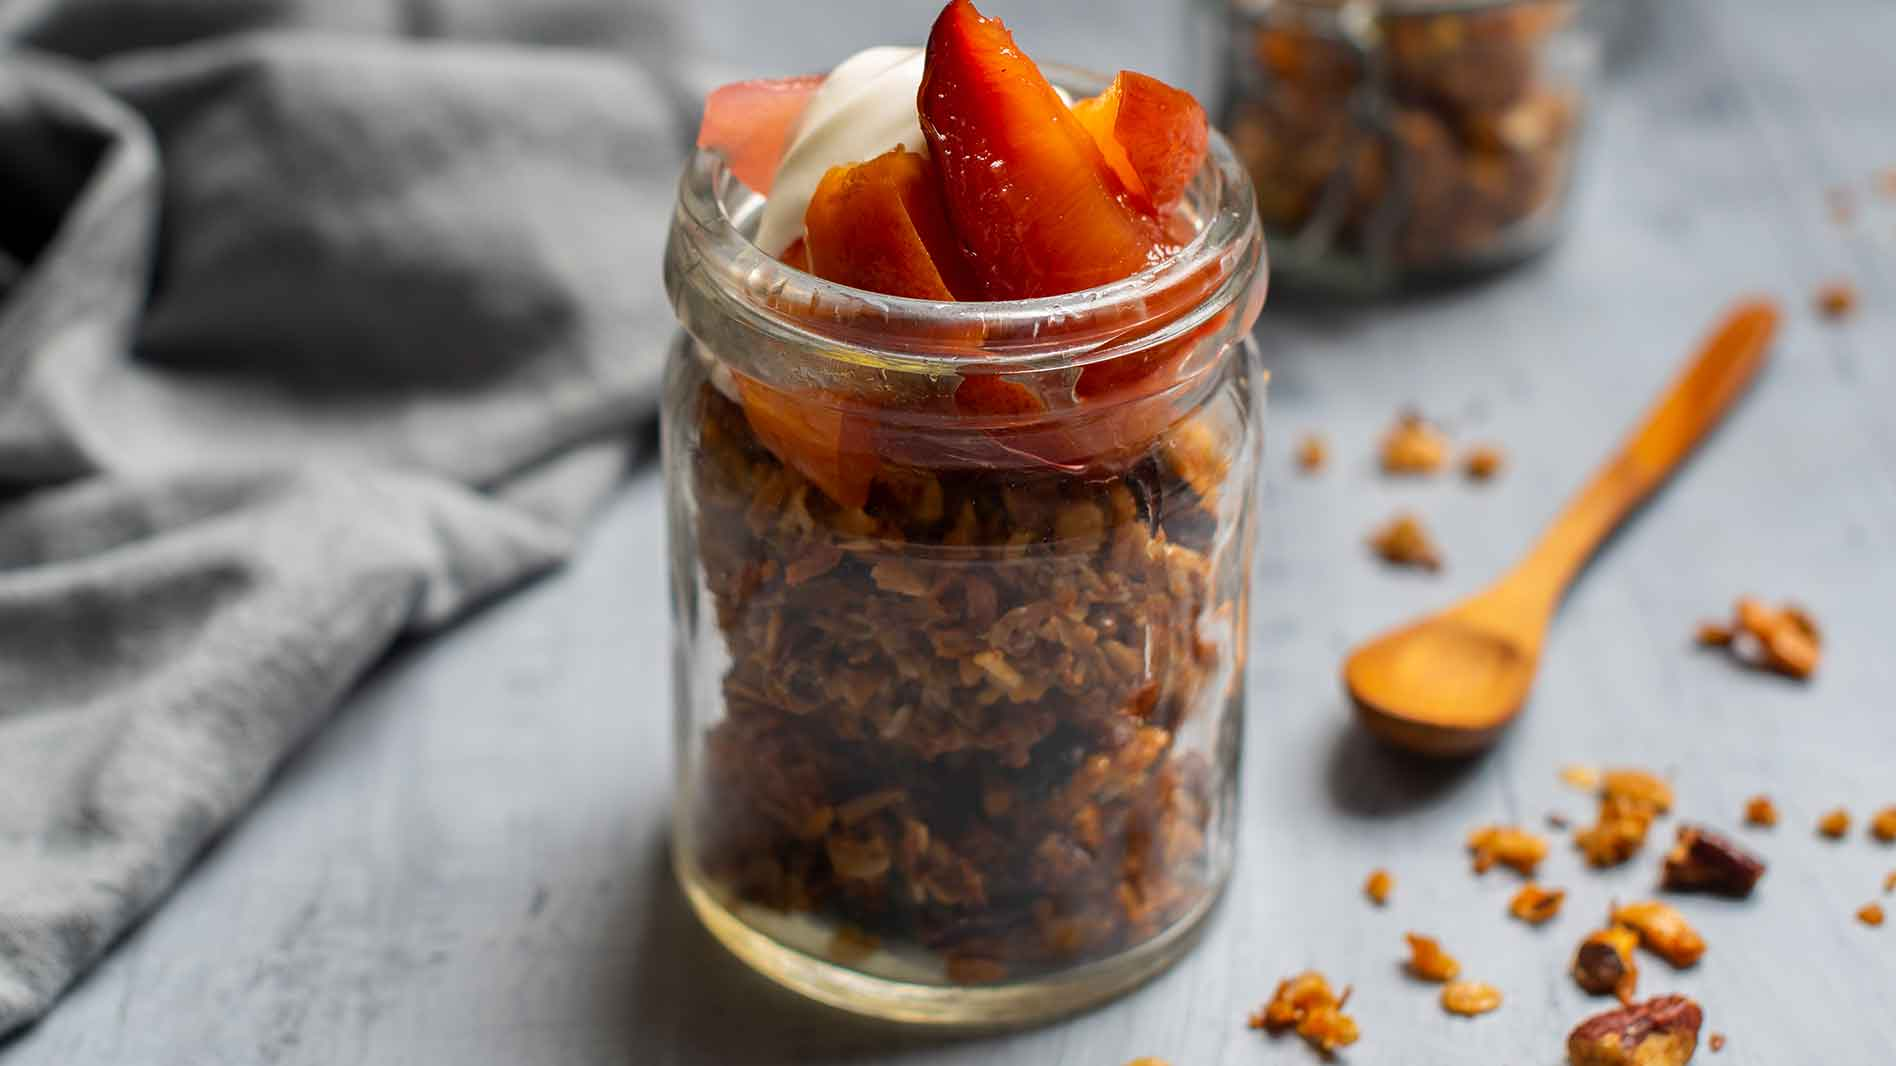 Homemade granola with honey and poached fruits